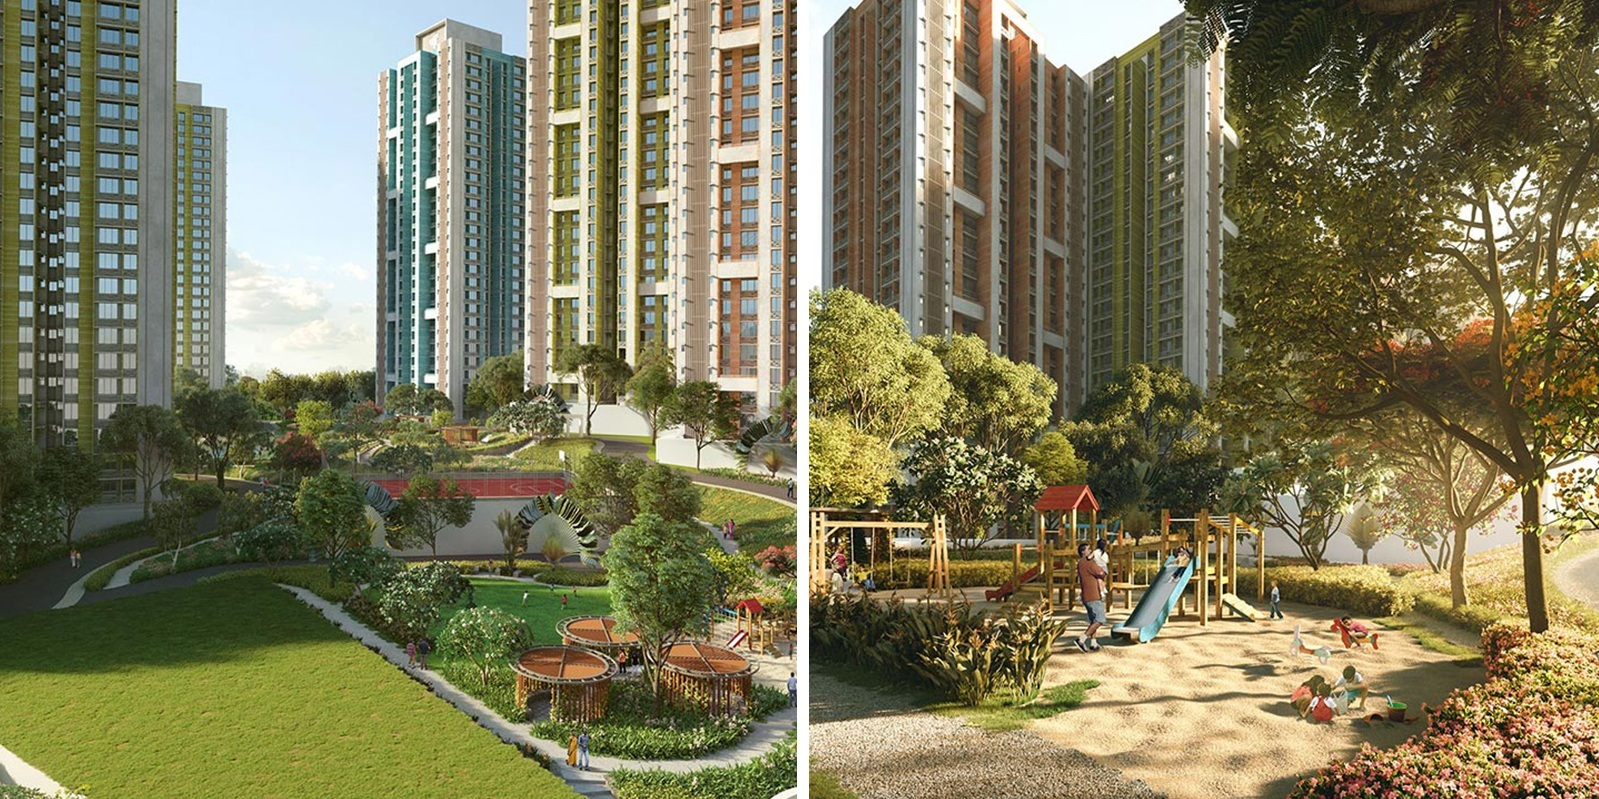 wadhwa wise city south block phase 1 b1 wing d3 amenities features7